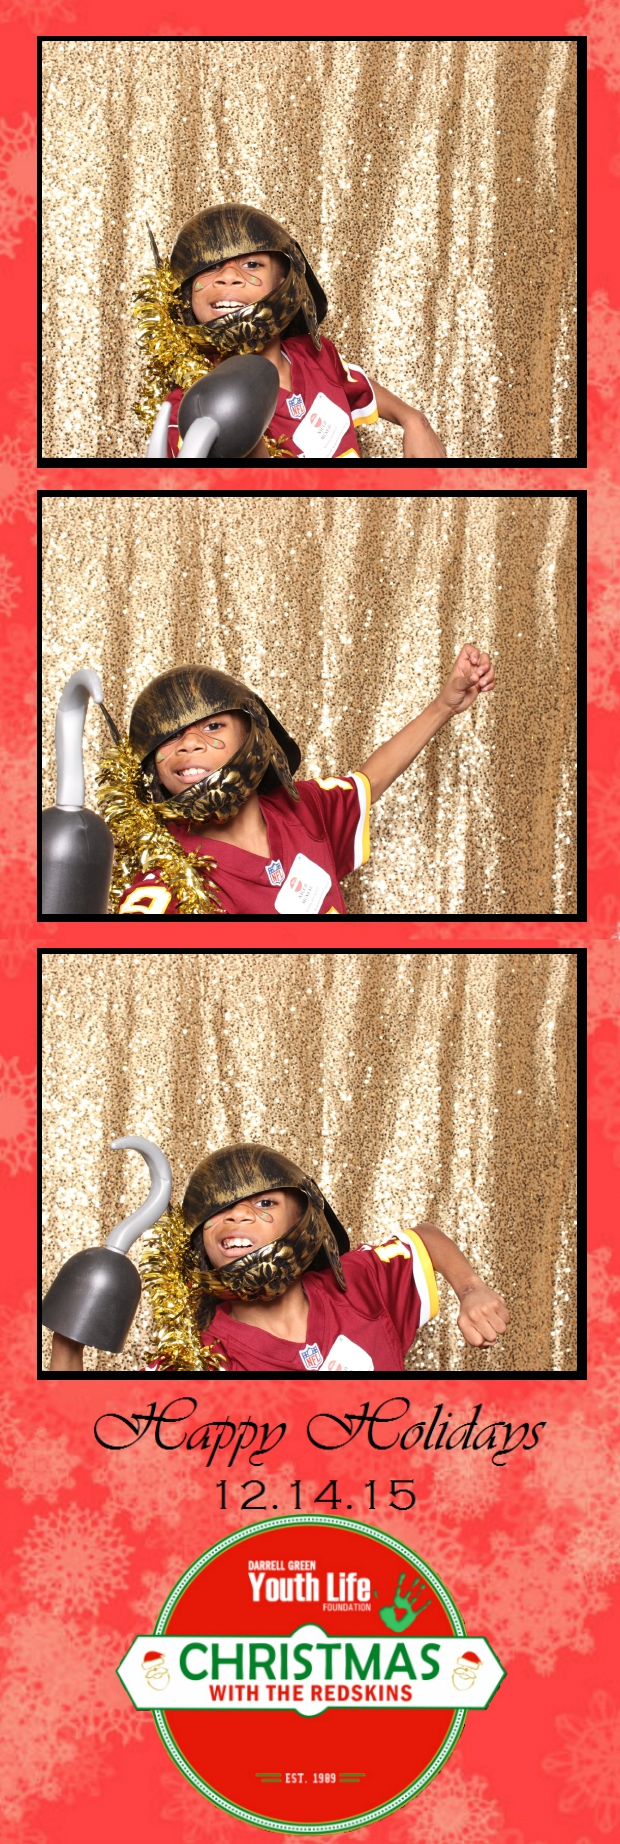 Guest House Events Photo Booth DGYLF Strips (31).jpg